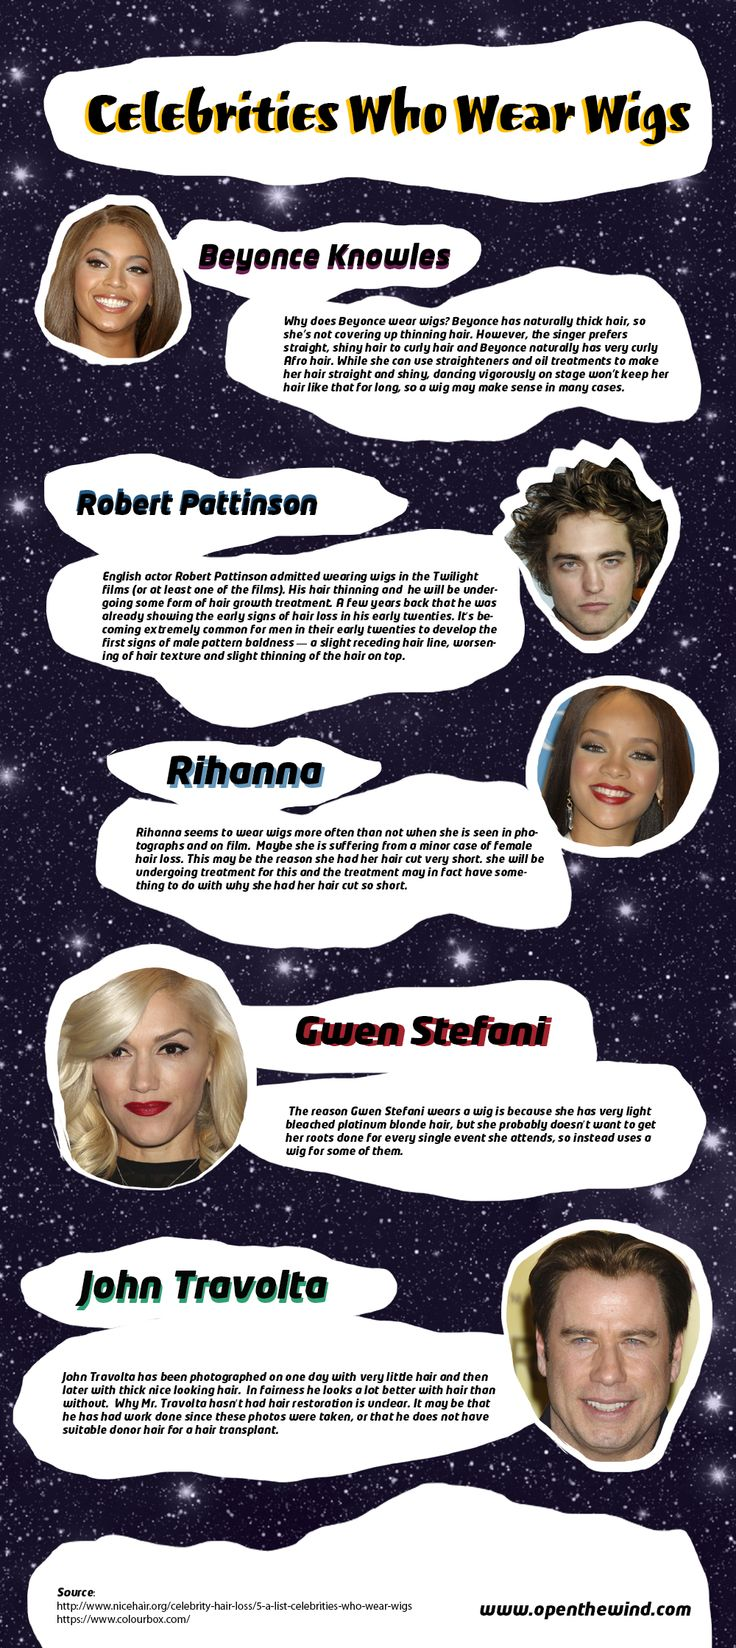 Hollywood Stars Sometimes Wear Wigs  Do you know that some celebrities wear wigs? Beyonce, Robert Pattinson, Rihanna, Gwen Stefani, John Travolta are often seen on stage with wigs.